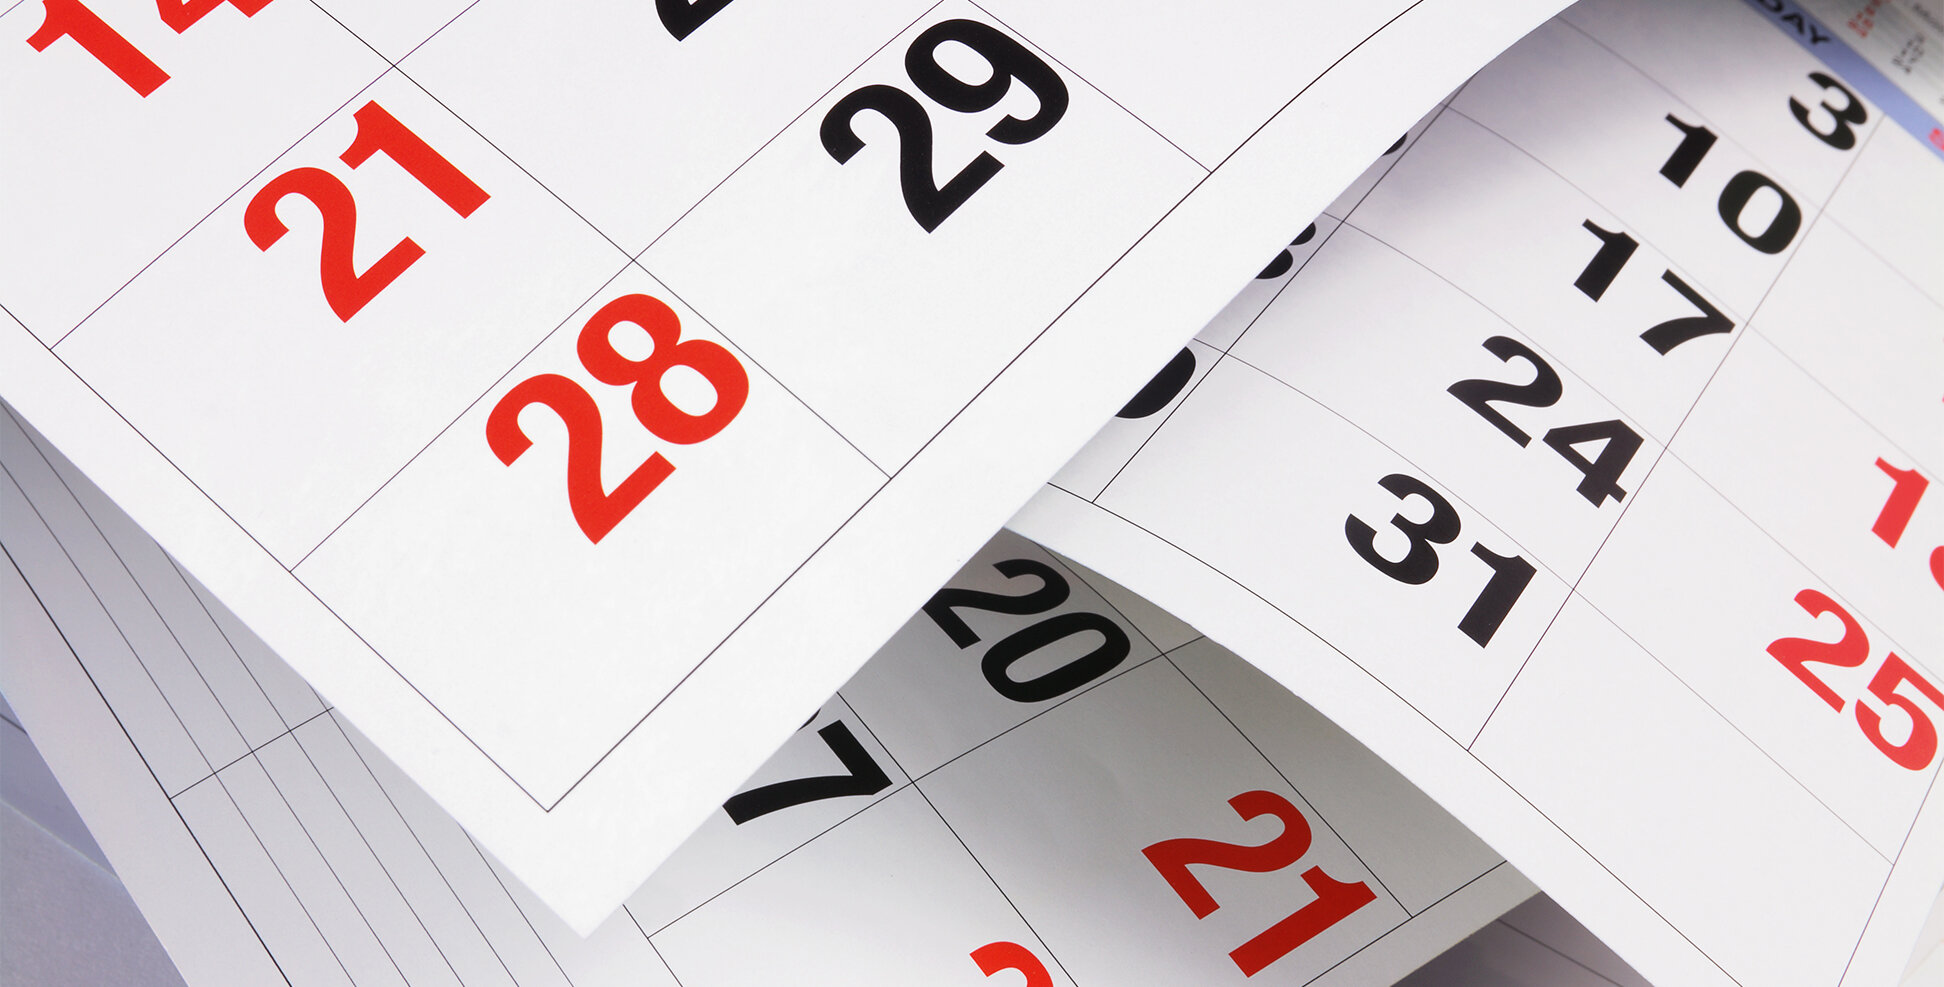 Gcps Calendar 2022.District Shares Calendar For 2021 22 Makes Adjustments To 2nd Semester Of This Year S Calendar Communique